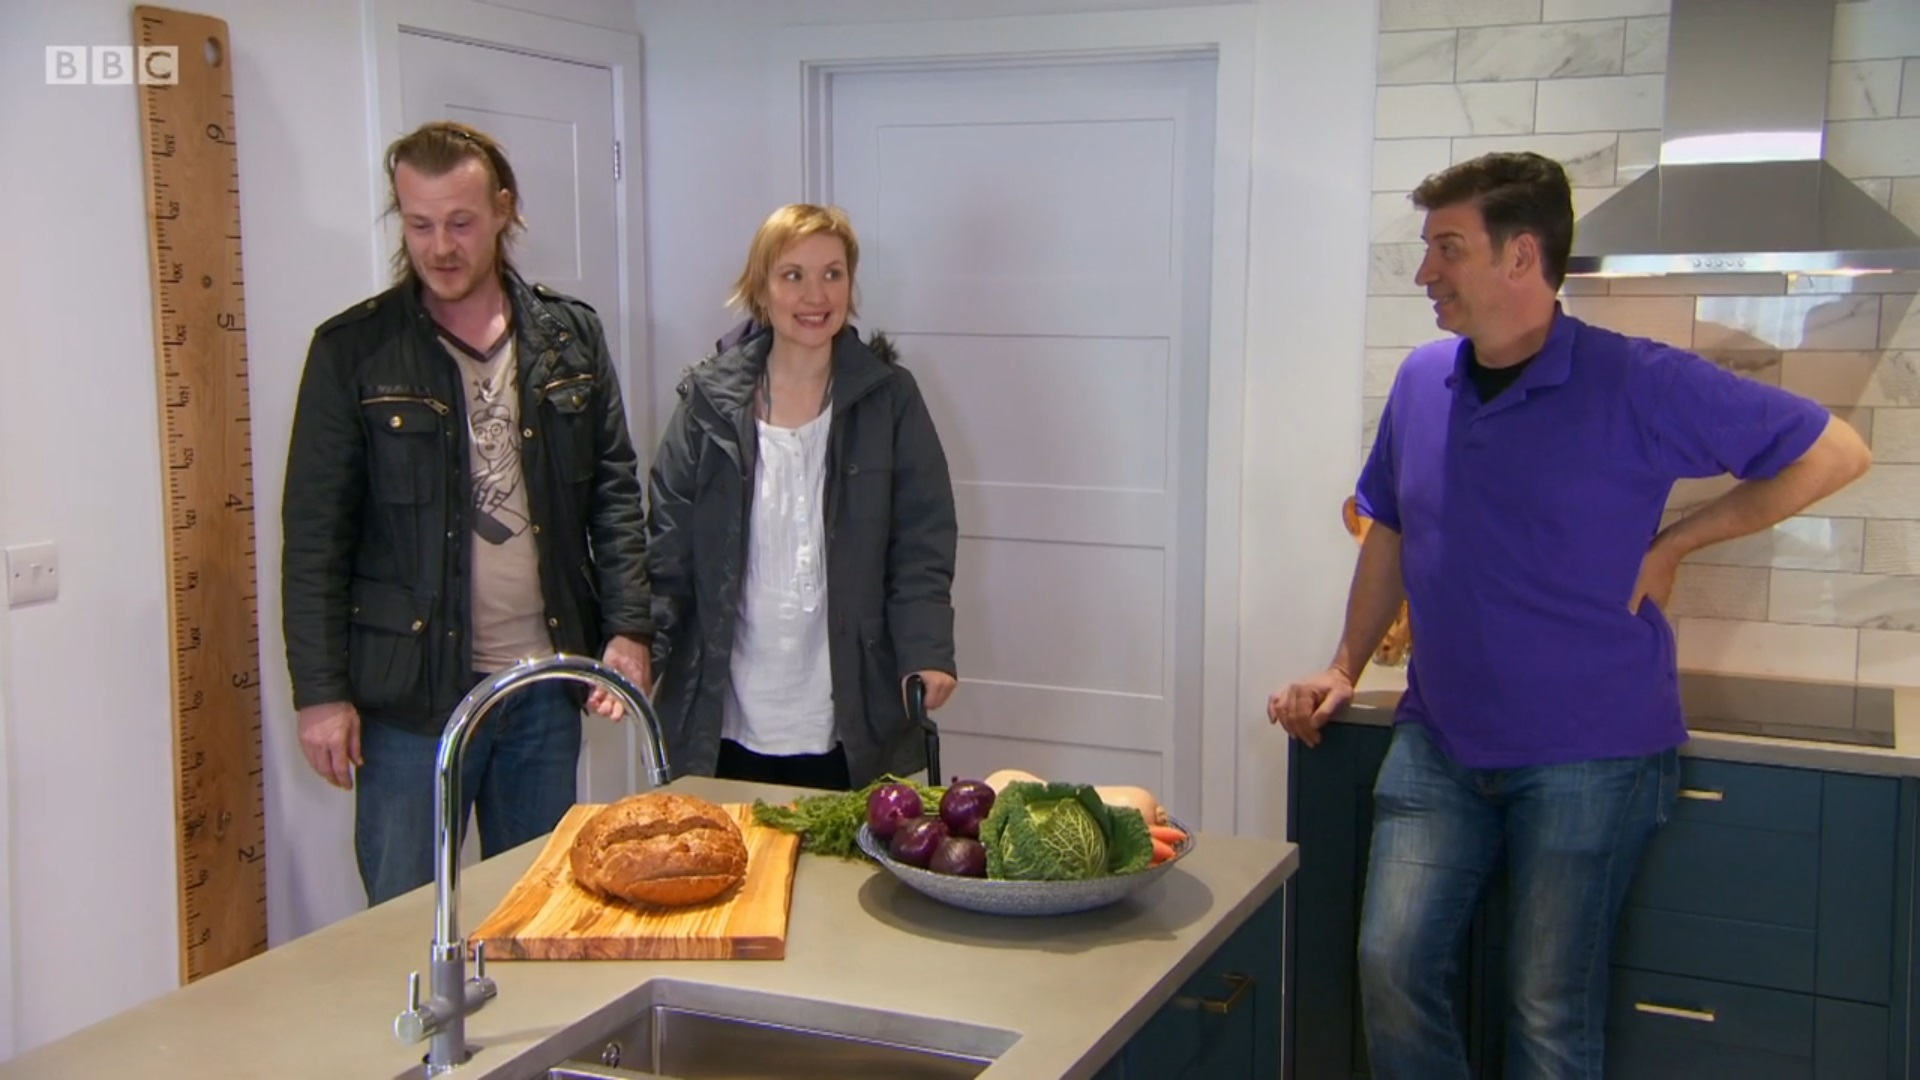 Ewan's hand-painted height ruler. And Rob & Charlotte looking so happy with their new home